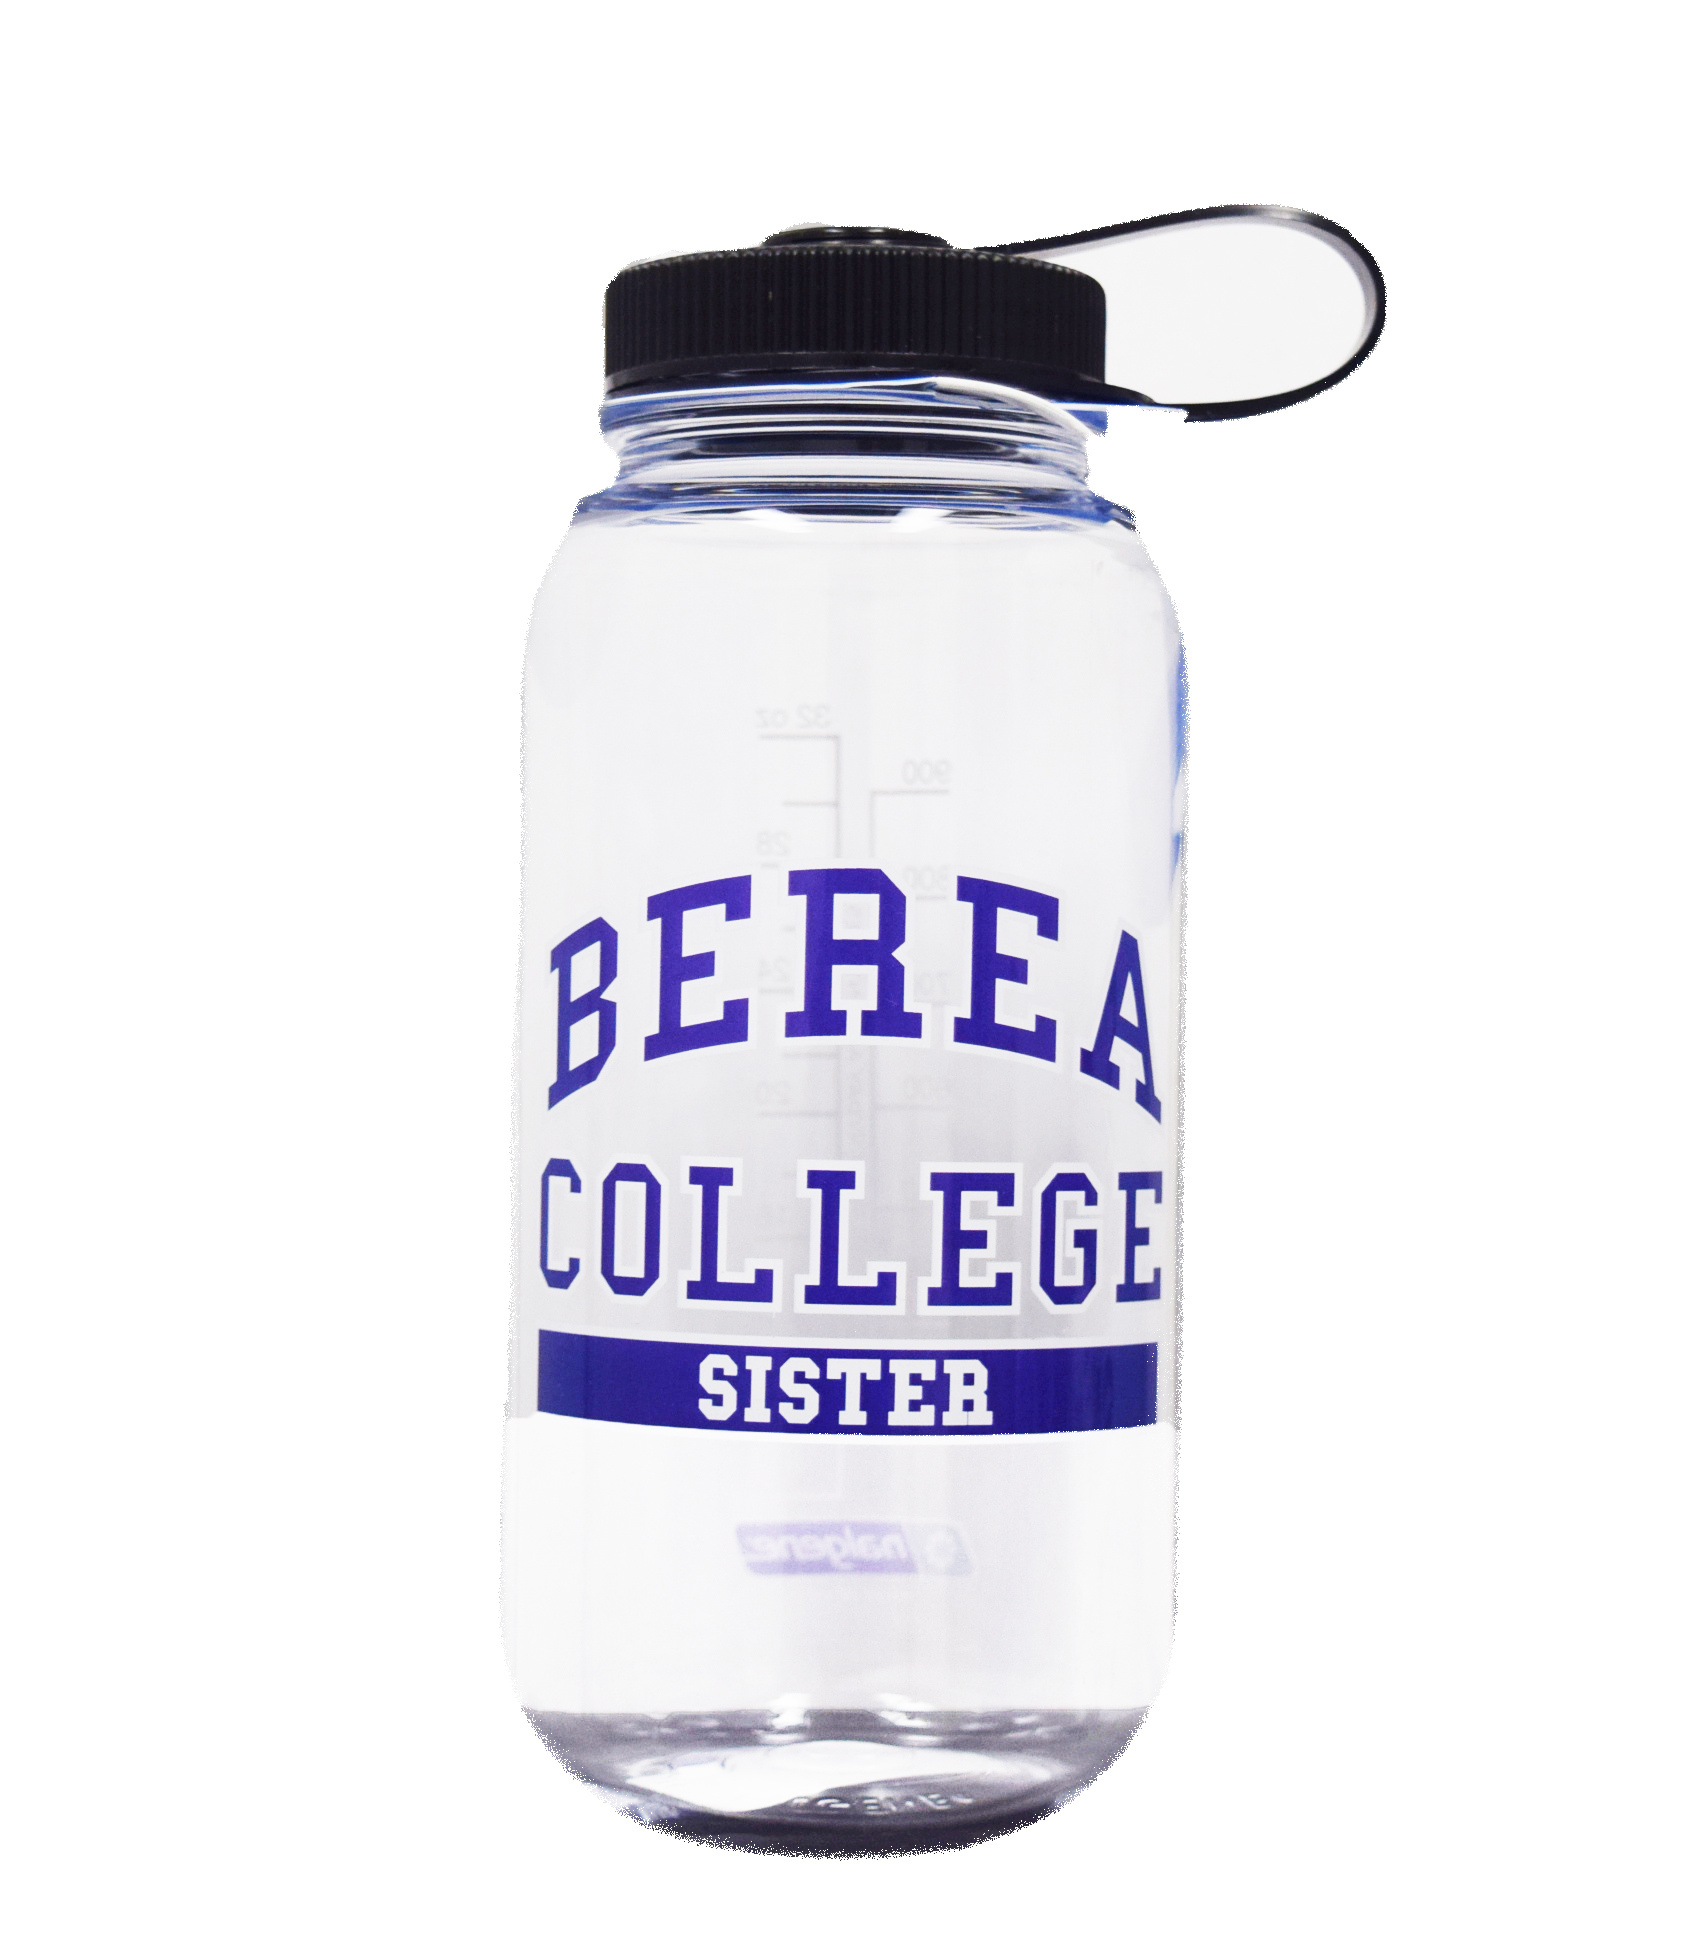 Clear Berea College Brother Water bottle-2